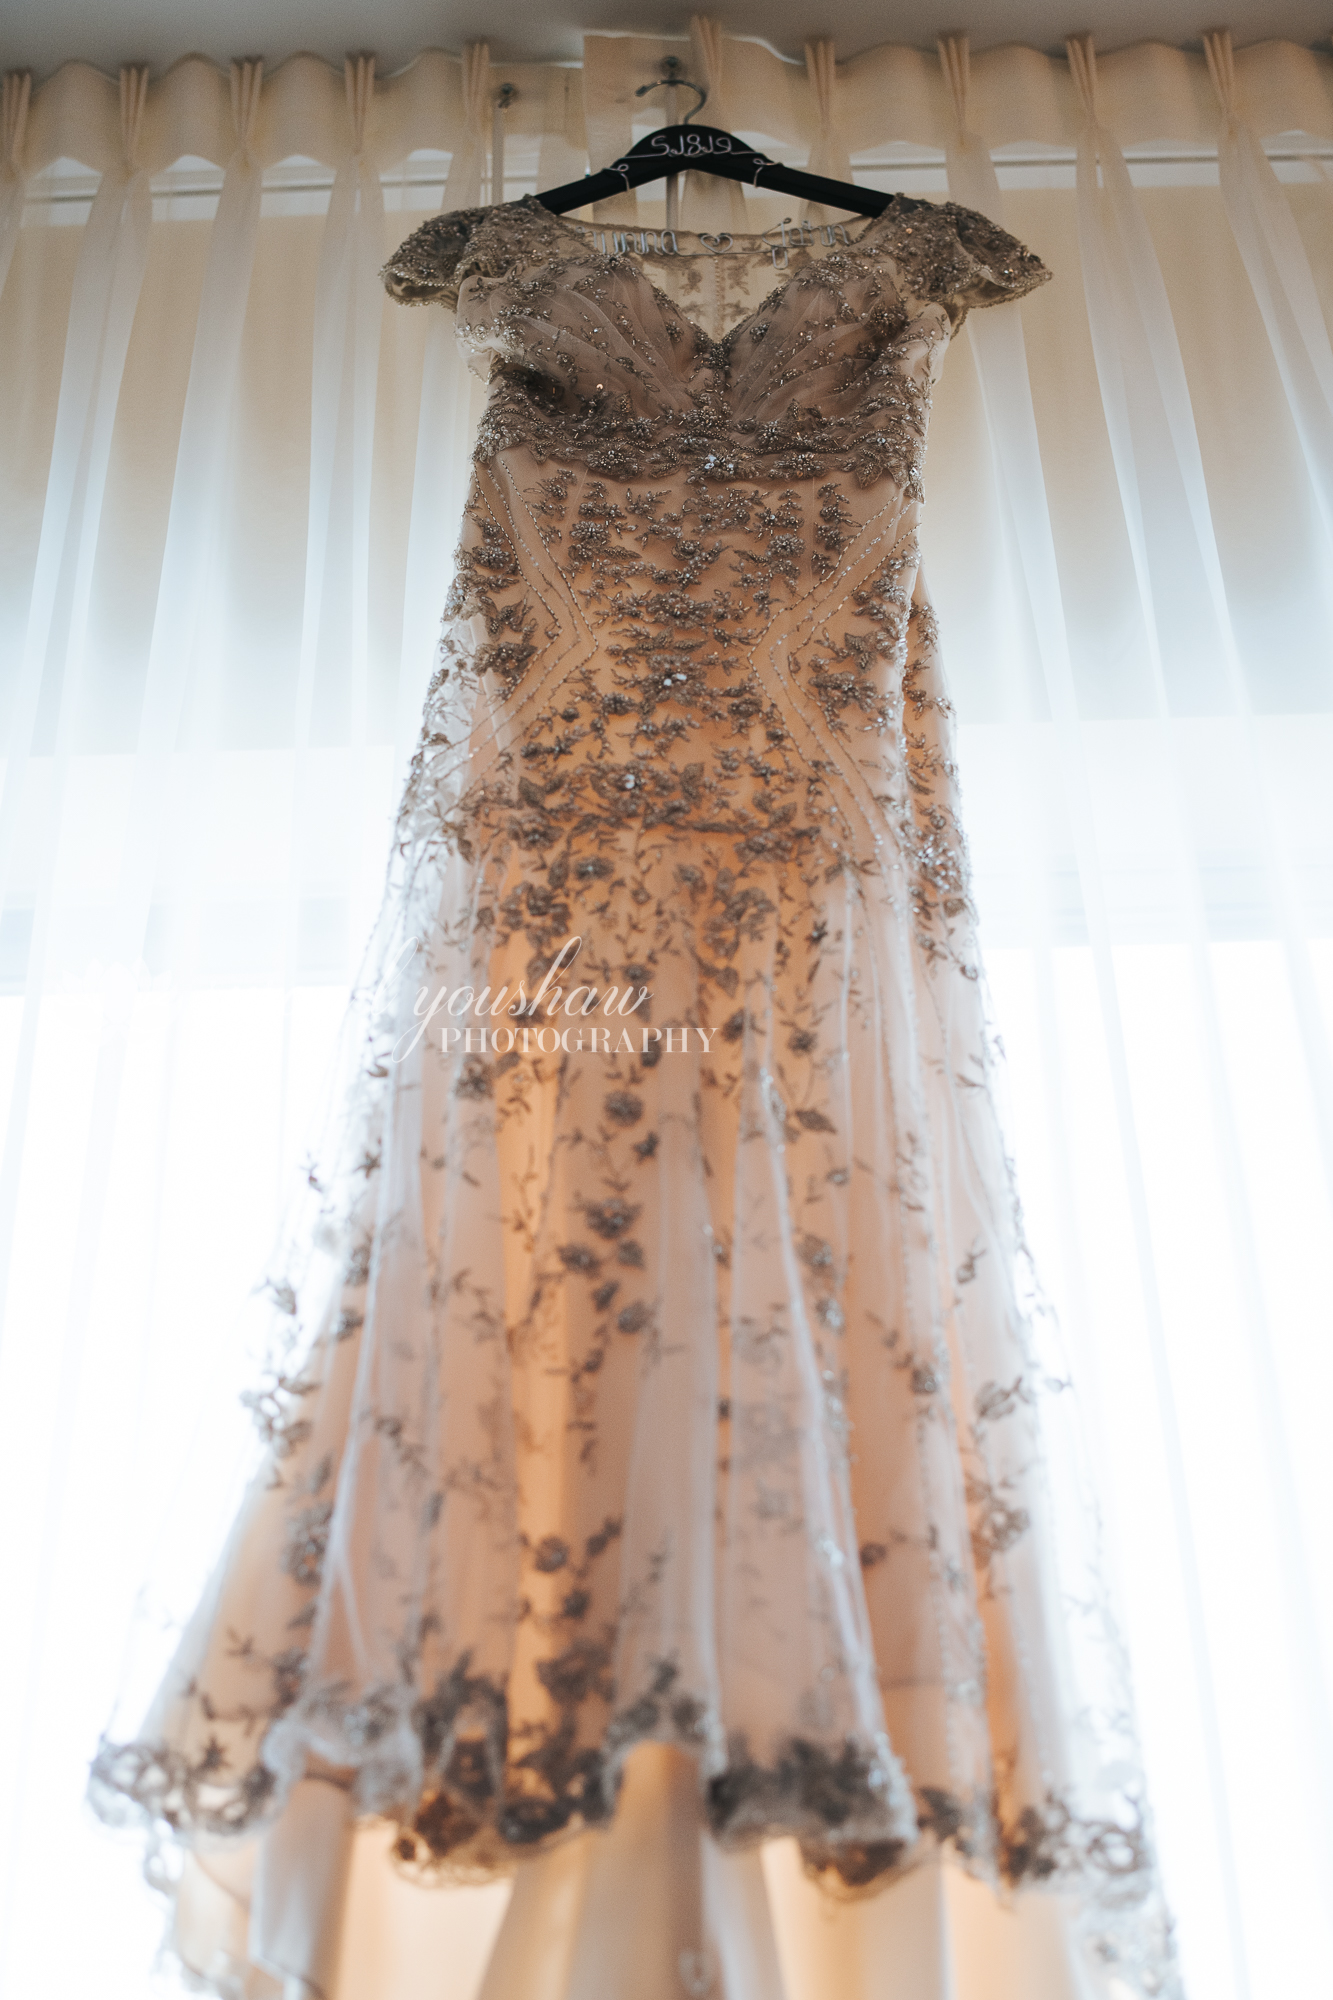 Chynna and John Wedding 05-18-2019 SLY Photography-3.jpg